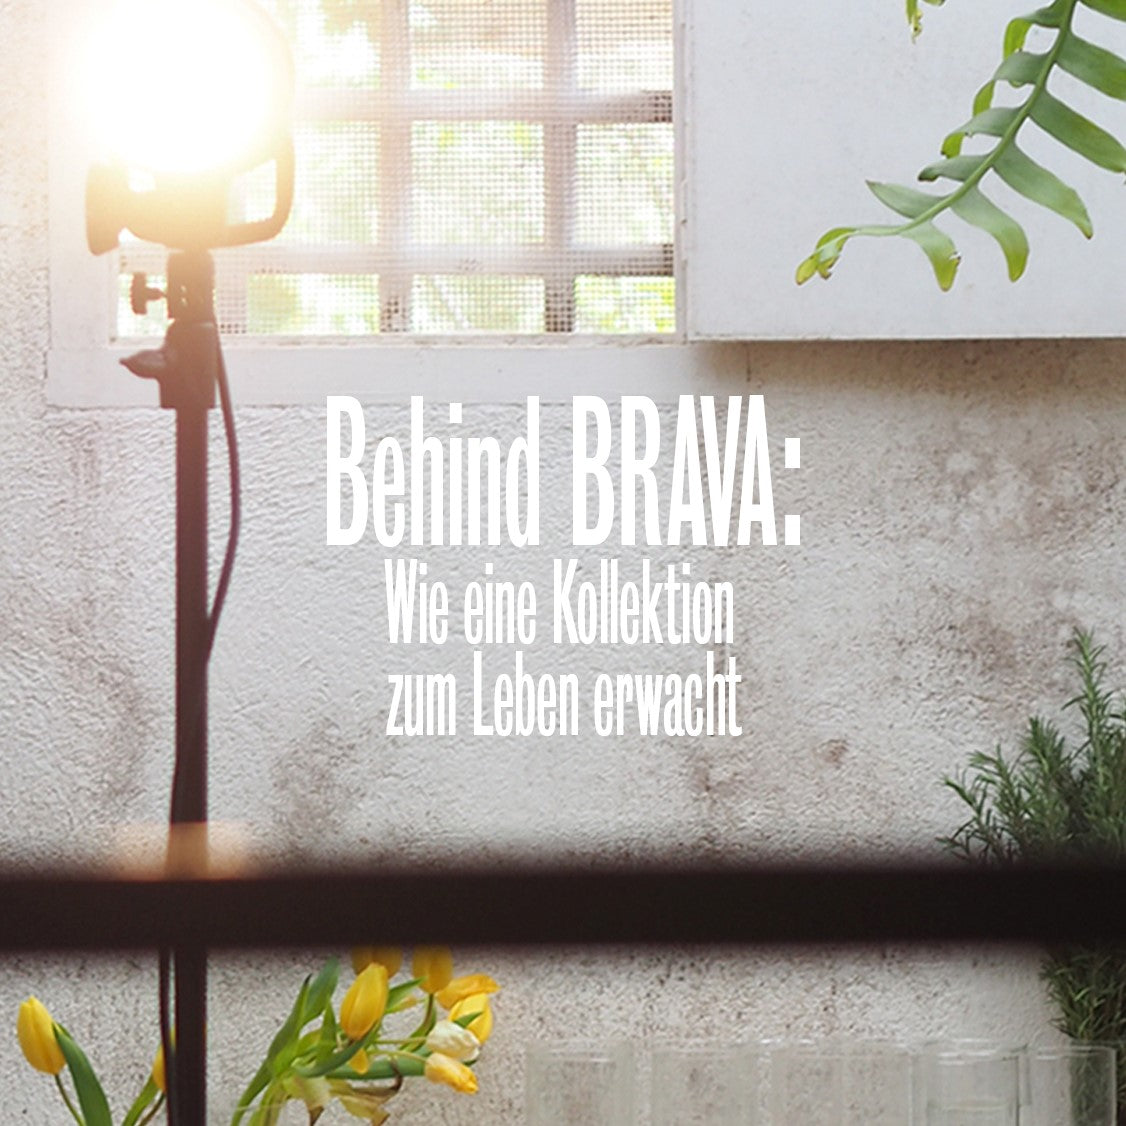 Behind BRAVA: Making our collection shine